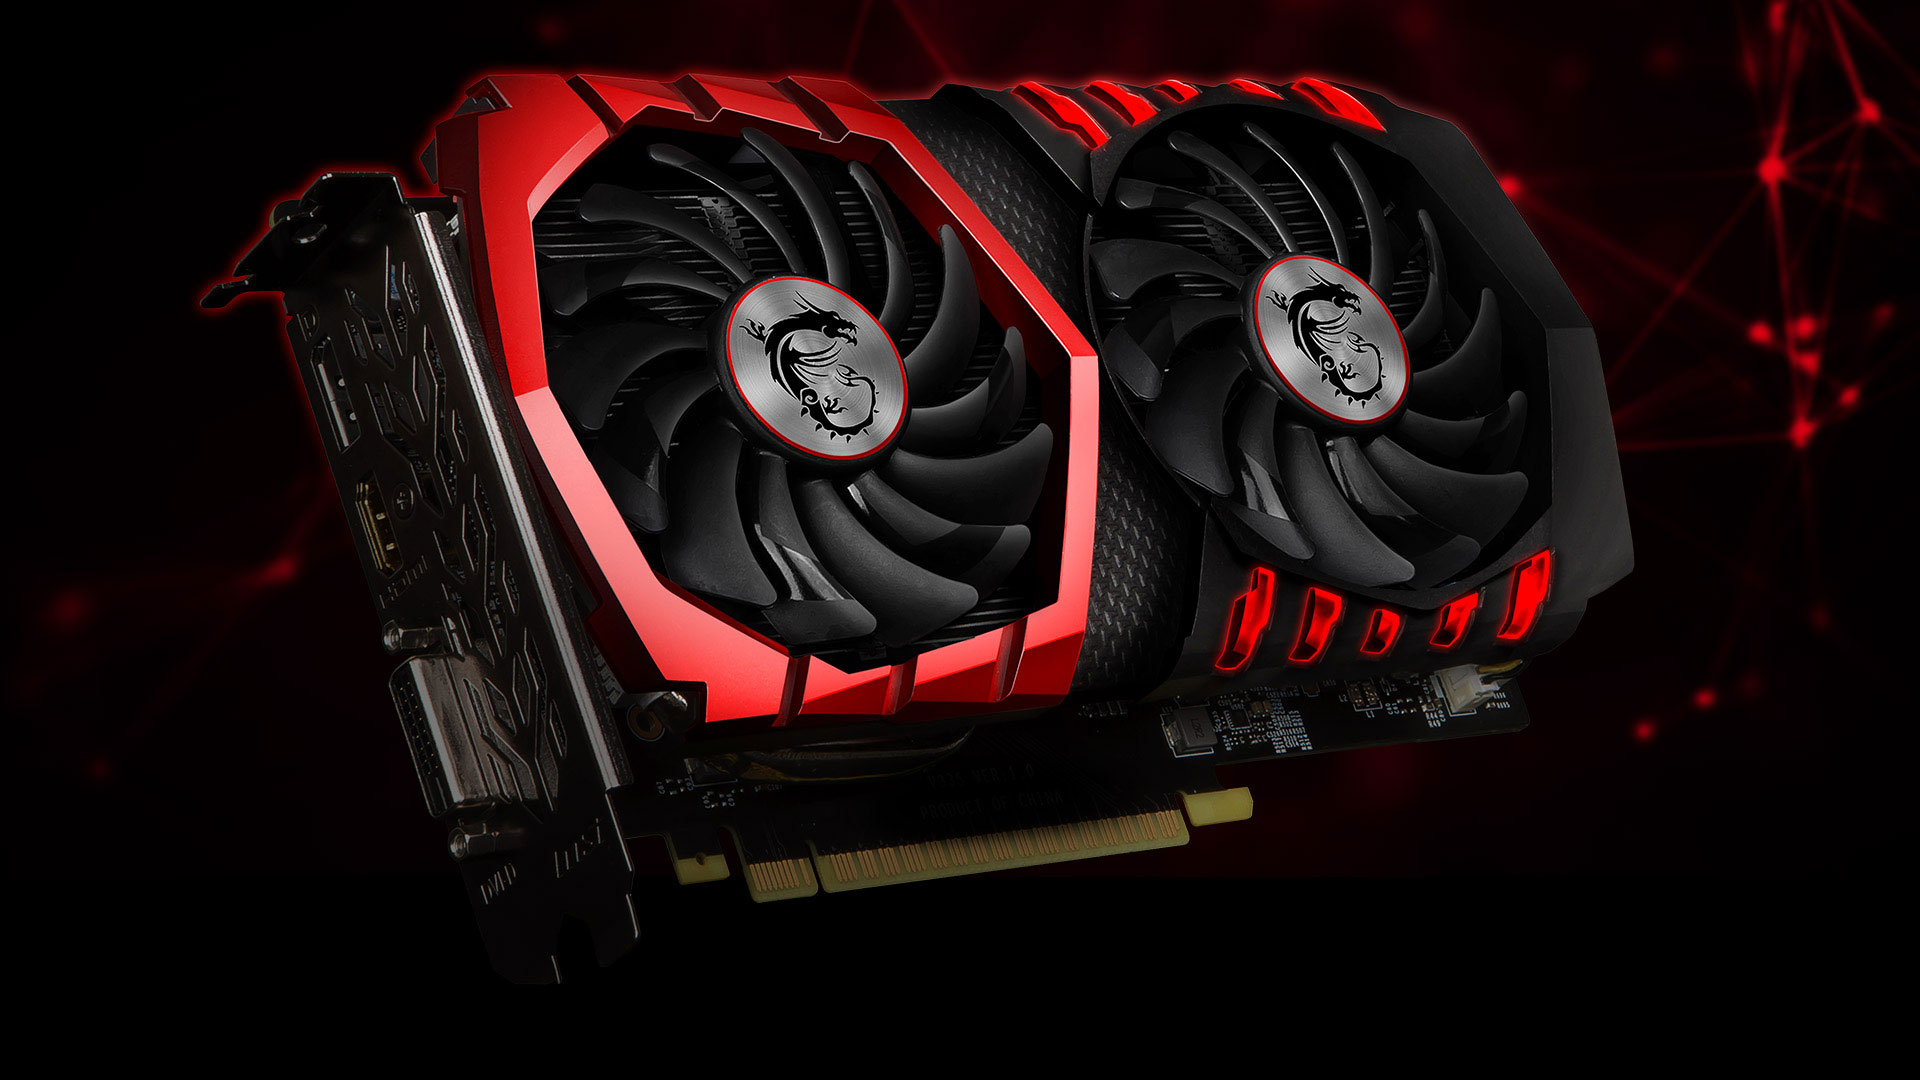 geforce gtx 1050 gaming x 2g graphics card the world leader in